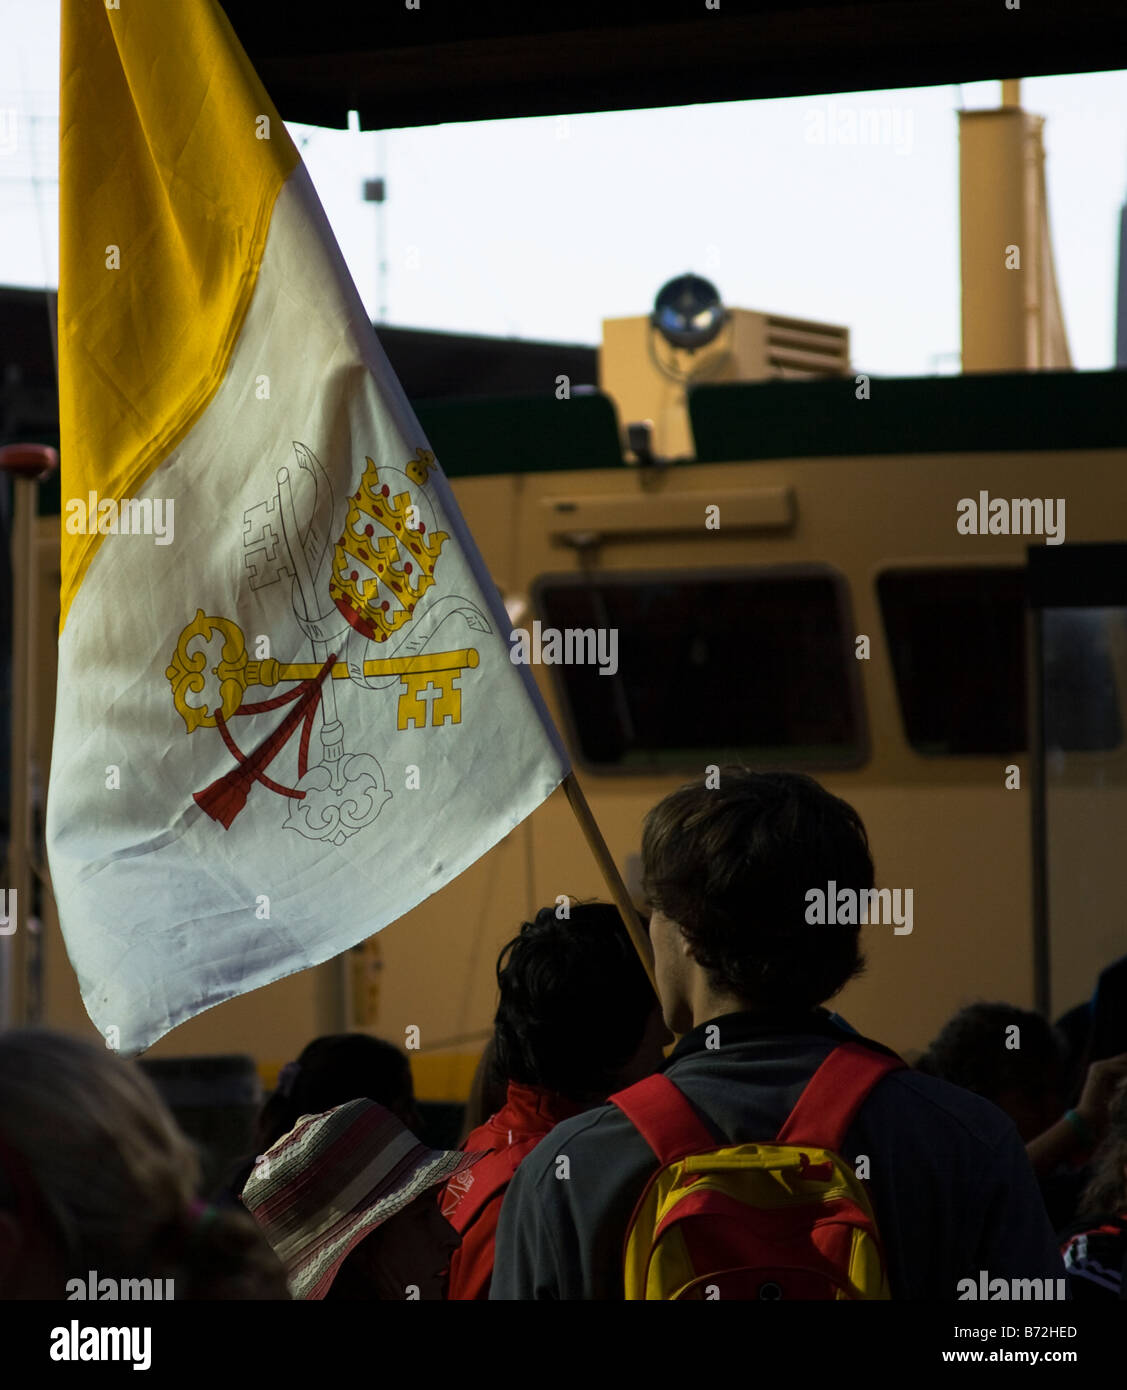 A pilgrim holding the flag of Vatican City the Holy See waits for a ferry at Circular Quay. - Stock Image